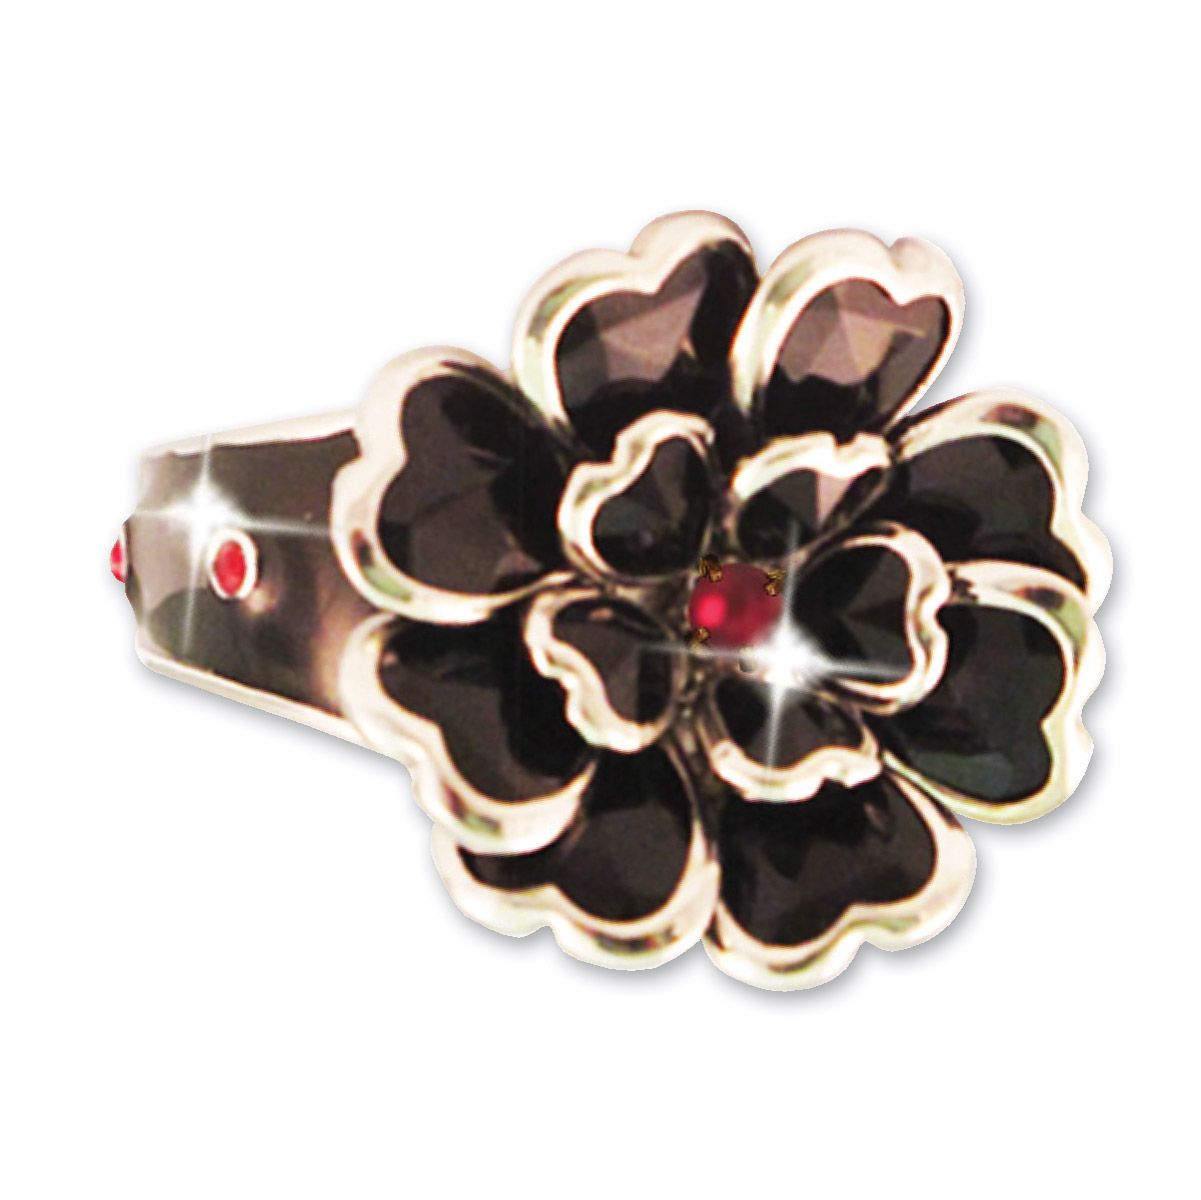 Hair Ringz Heart Petals with Ruby Stones